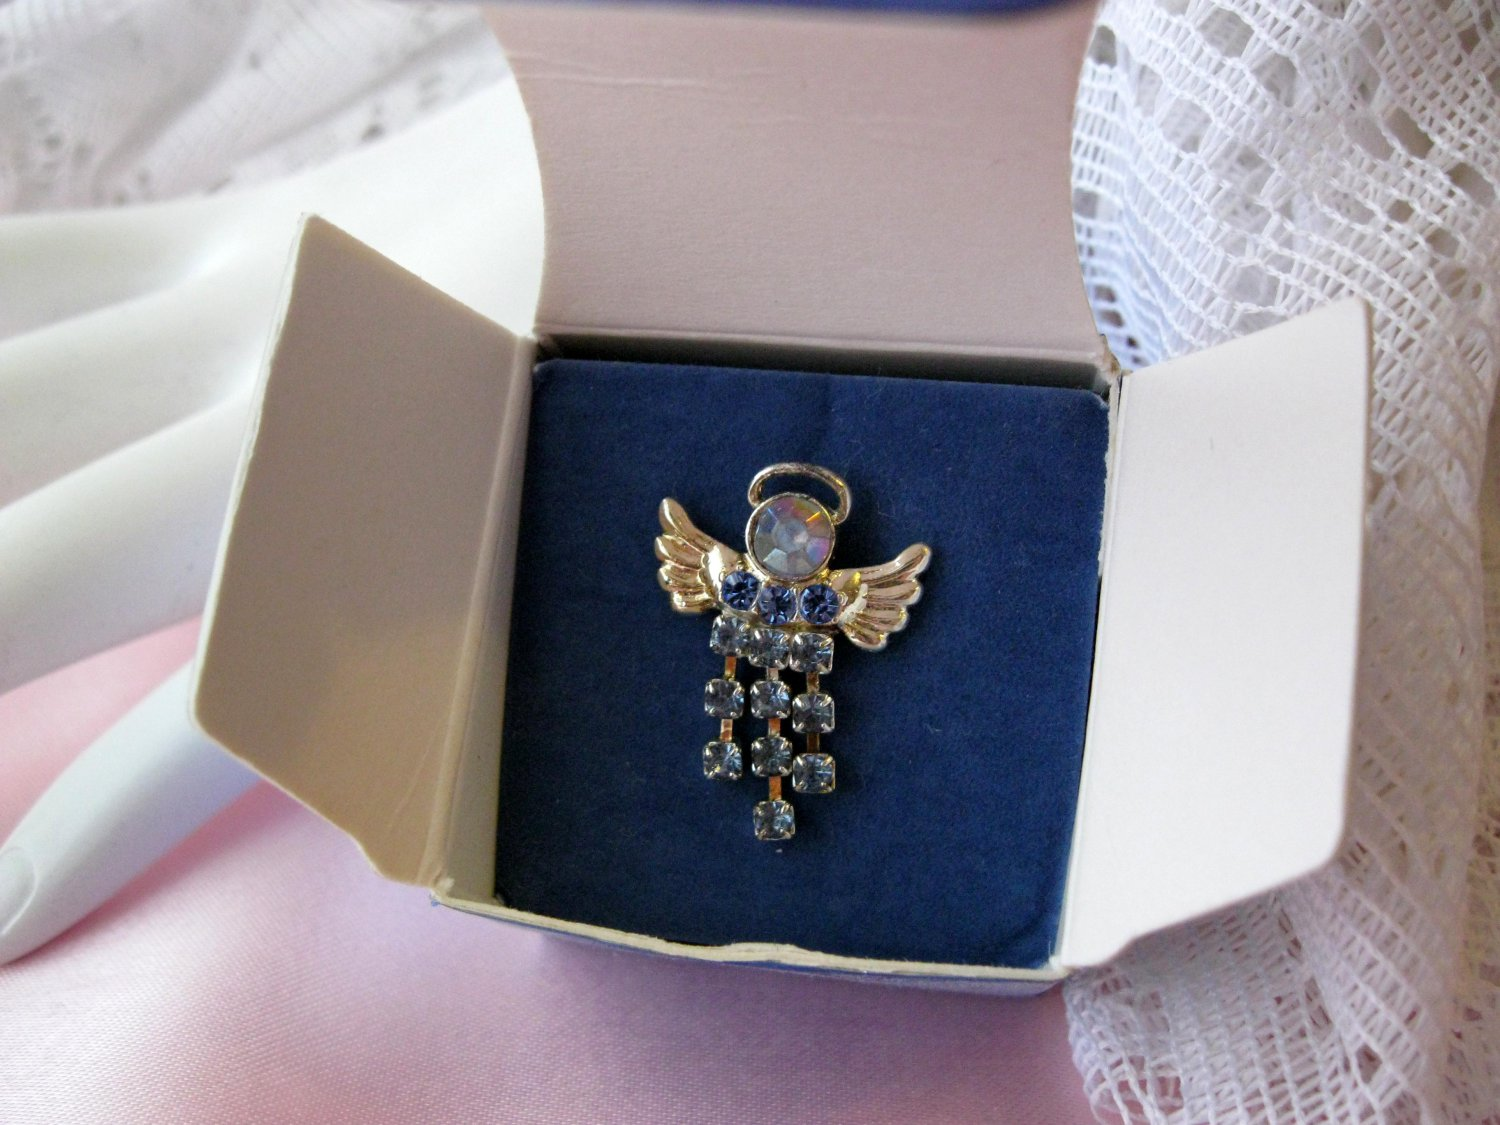 Avon pin,christmas pin,angel pin,angel,avon,rhinestone pin